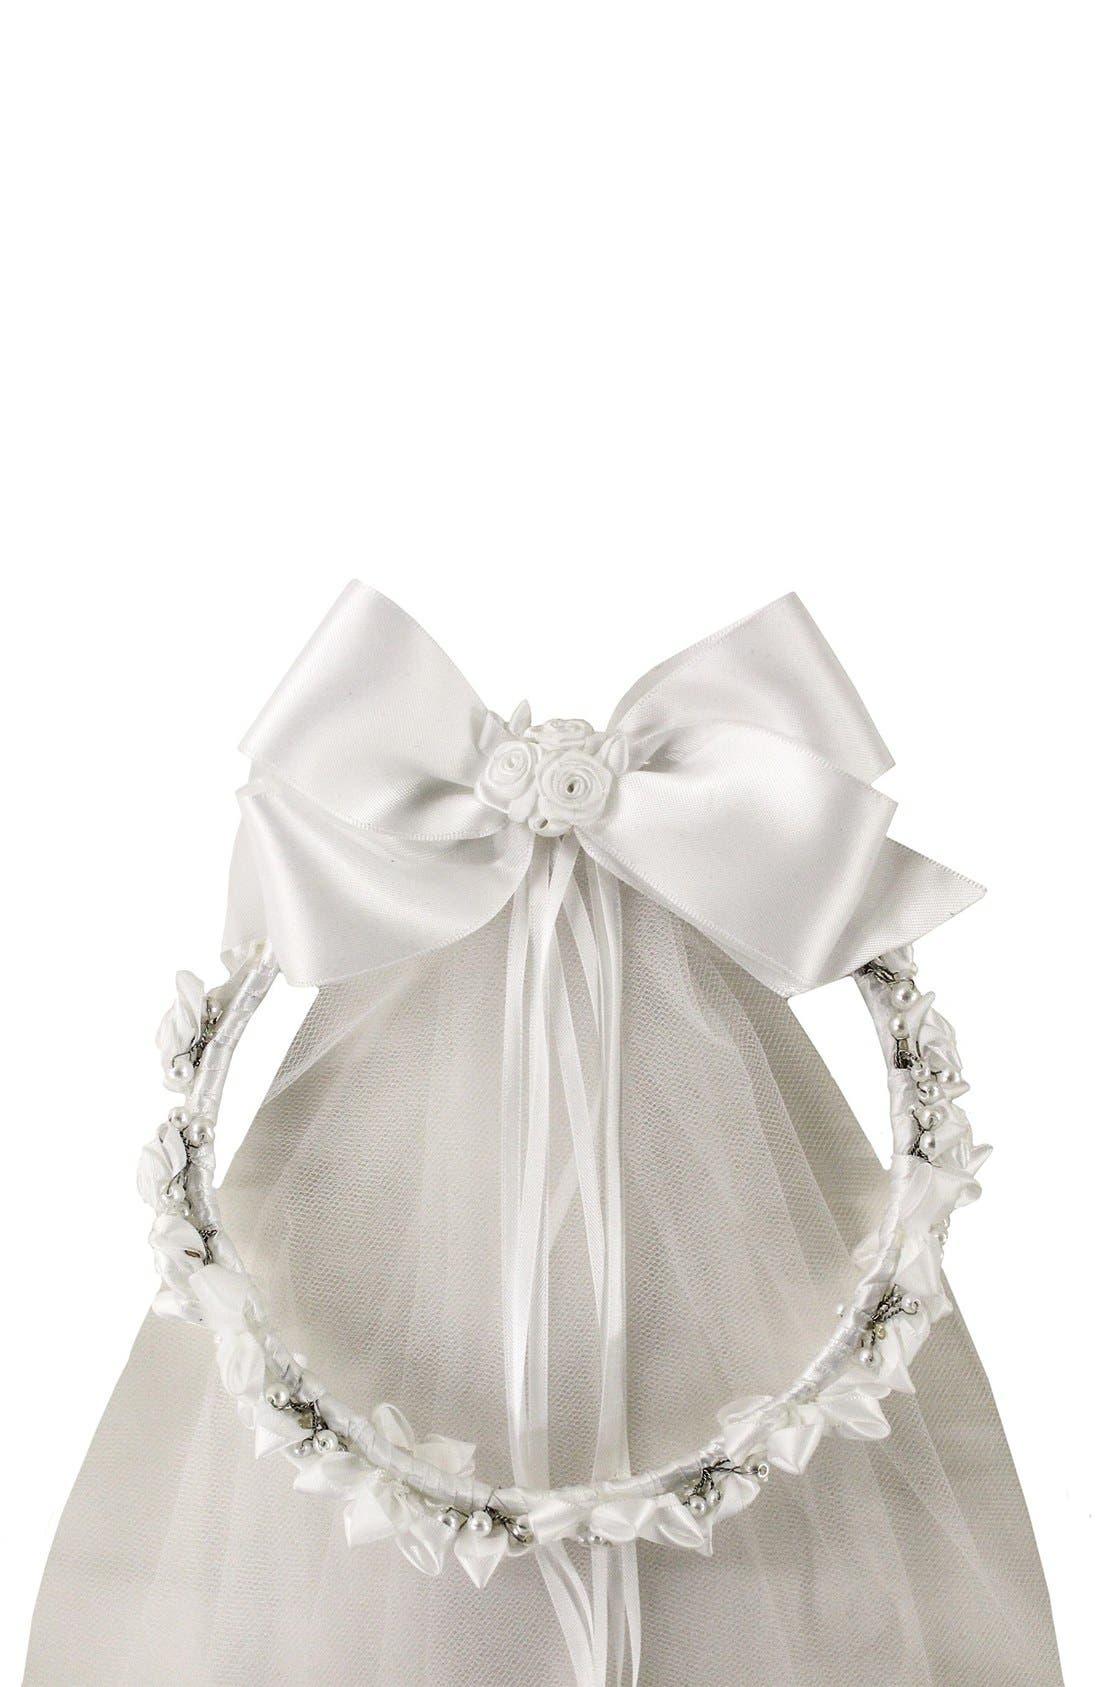 Communion Wreath with Removable Veil,                             Main thumbnail 1, color,                             White